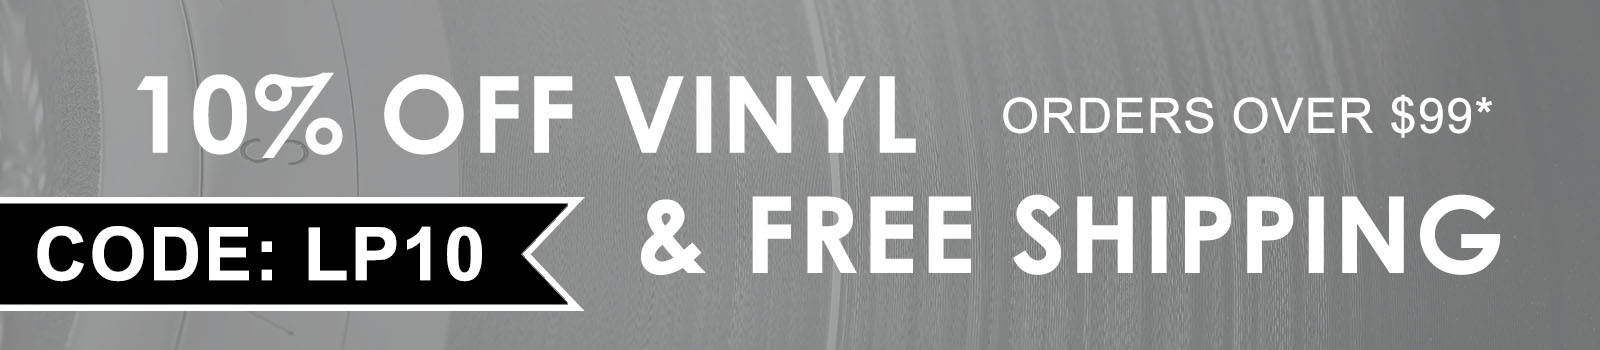 10% Off Vinyl & Free Shipping on Orders over $99 with Code LP10